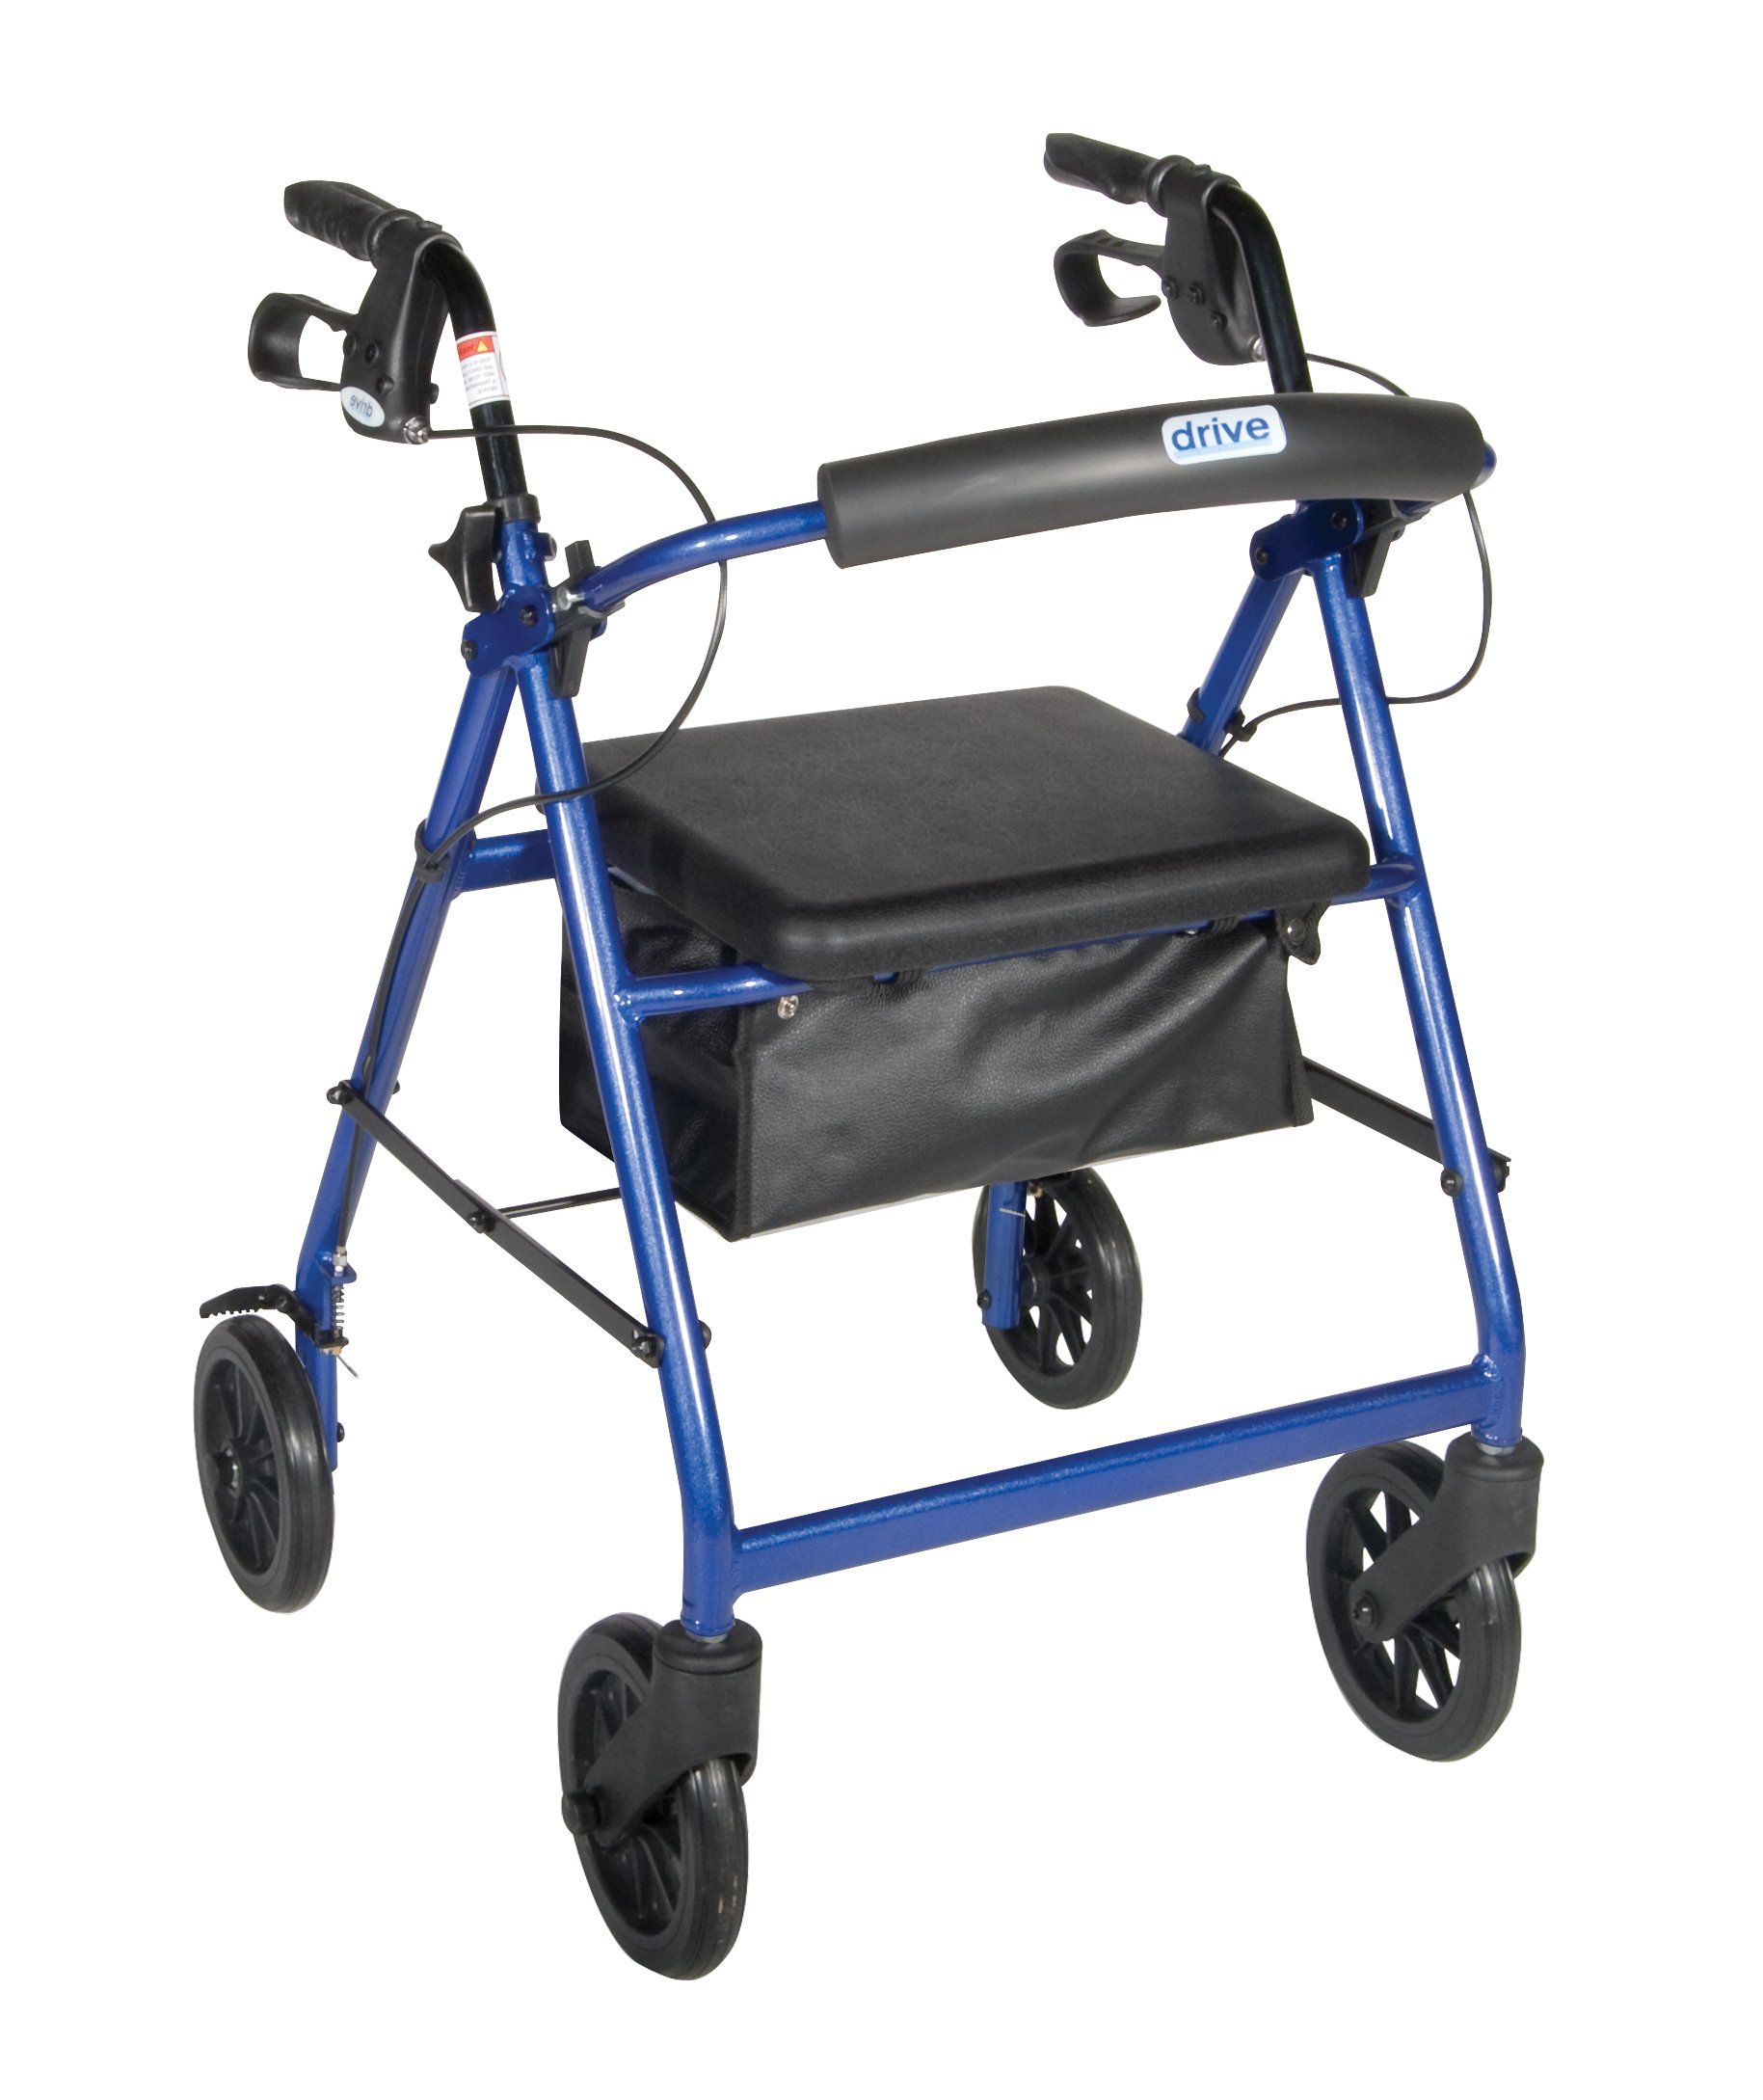 R728BL - Aluminum Rollator with Fold Up and Removable Back Support and Padded Seat, Blue